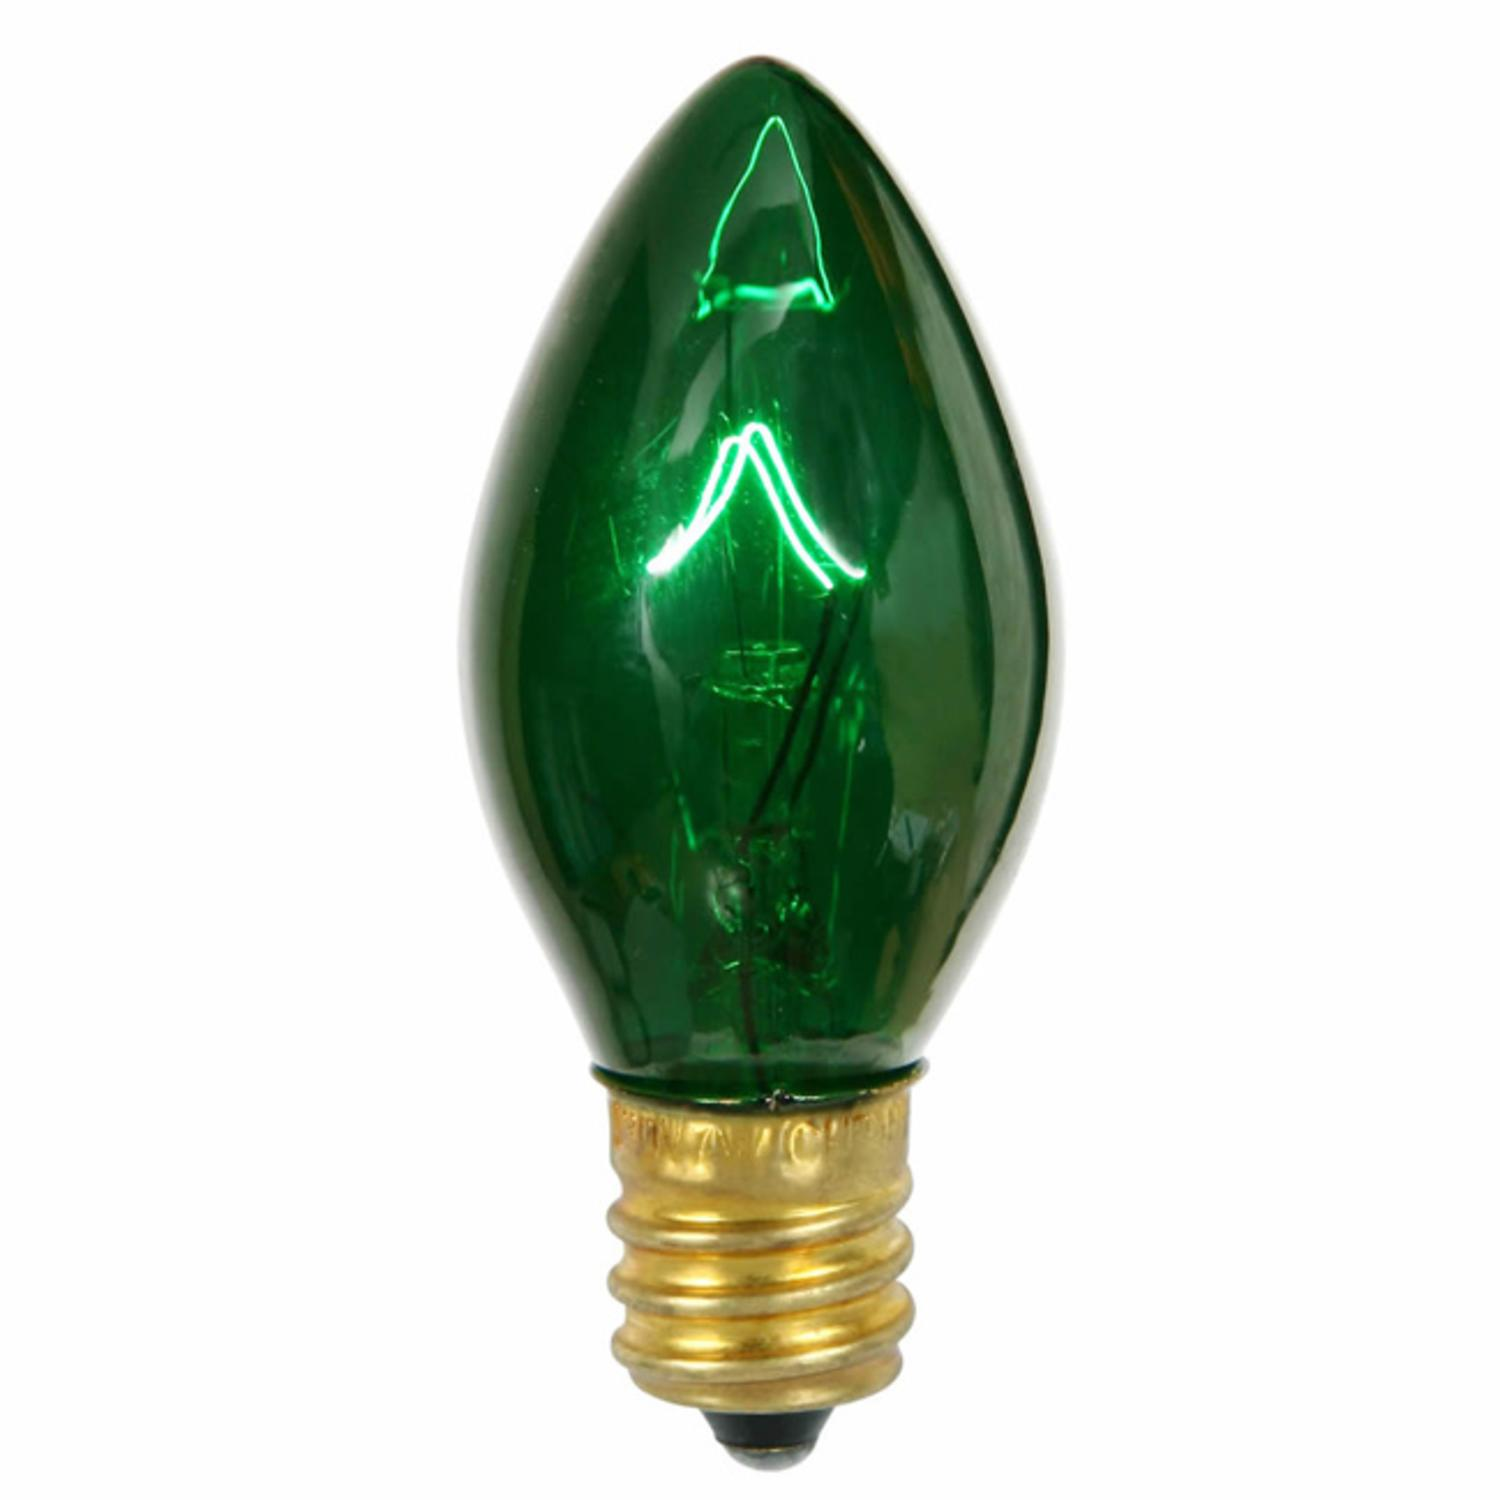 Club Pack of 100 Transparent Green Twinkle C7 Replacement Christmas Light Bulbs